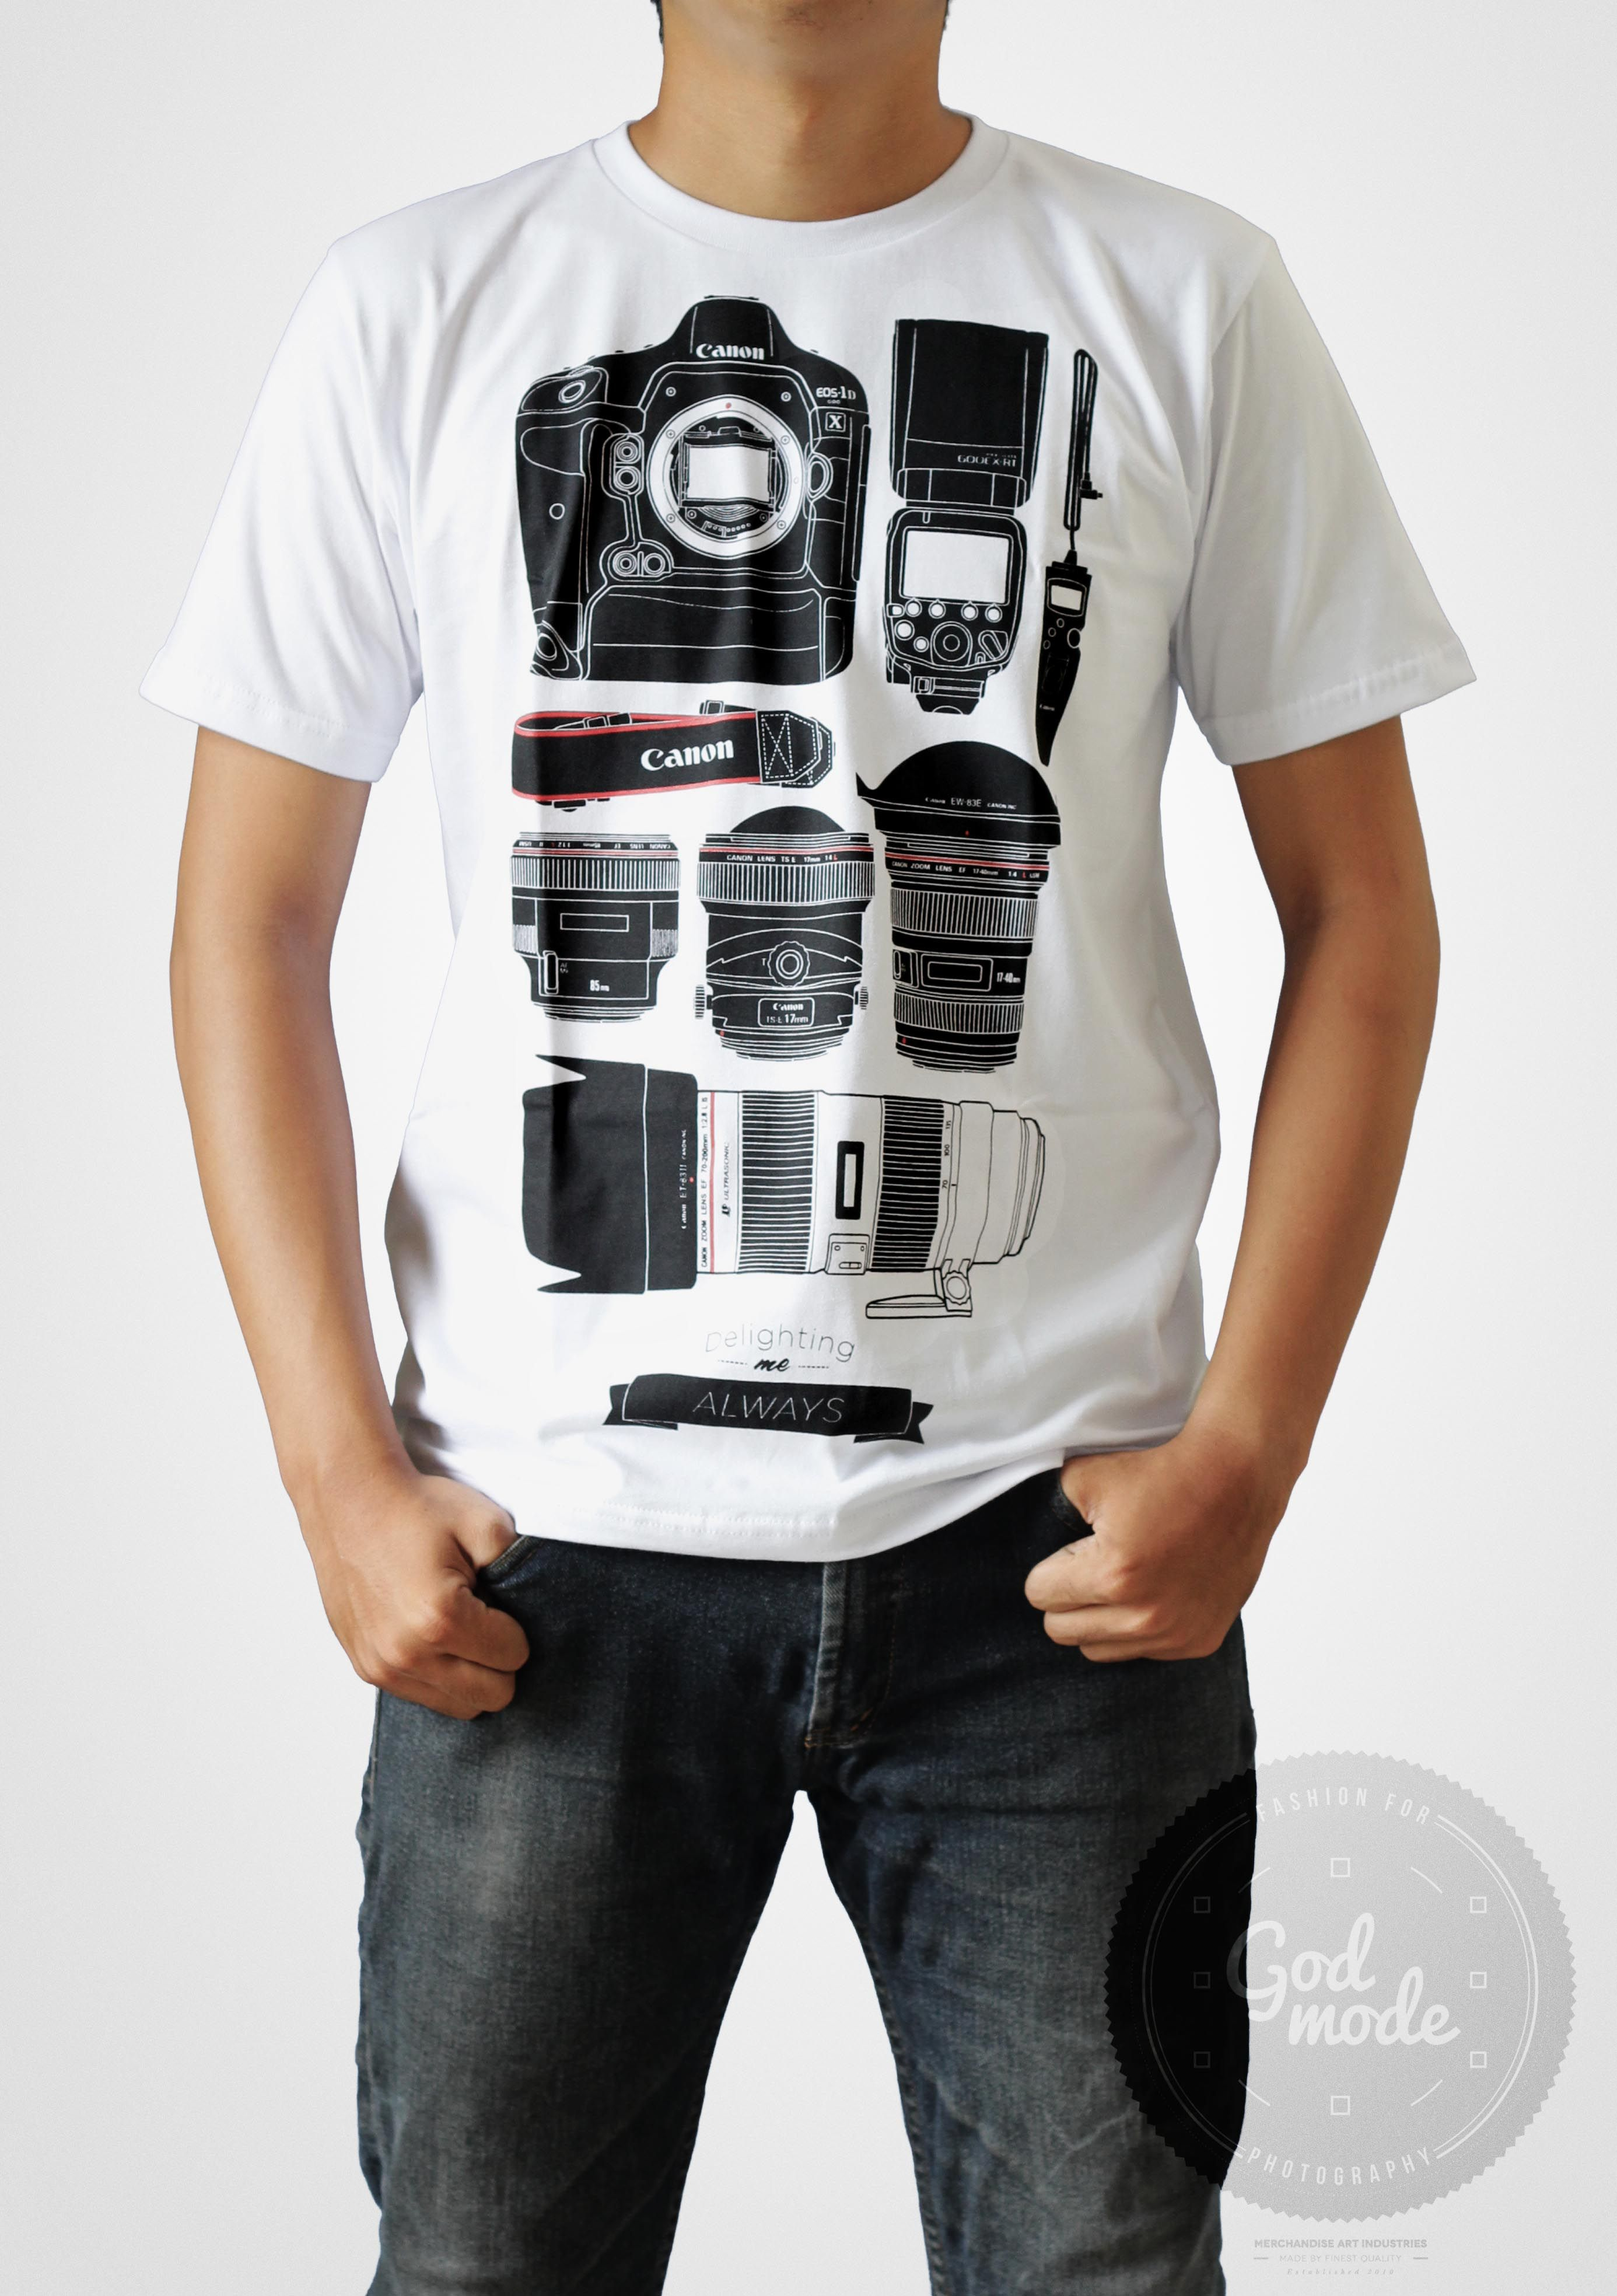 Black dog t shirt ebay -  18 Usd Canon Equipment T Shirt Photography Delighting Me Always